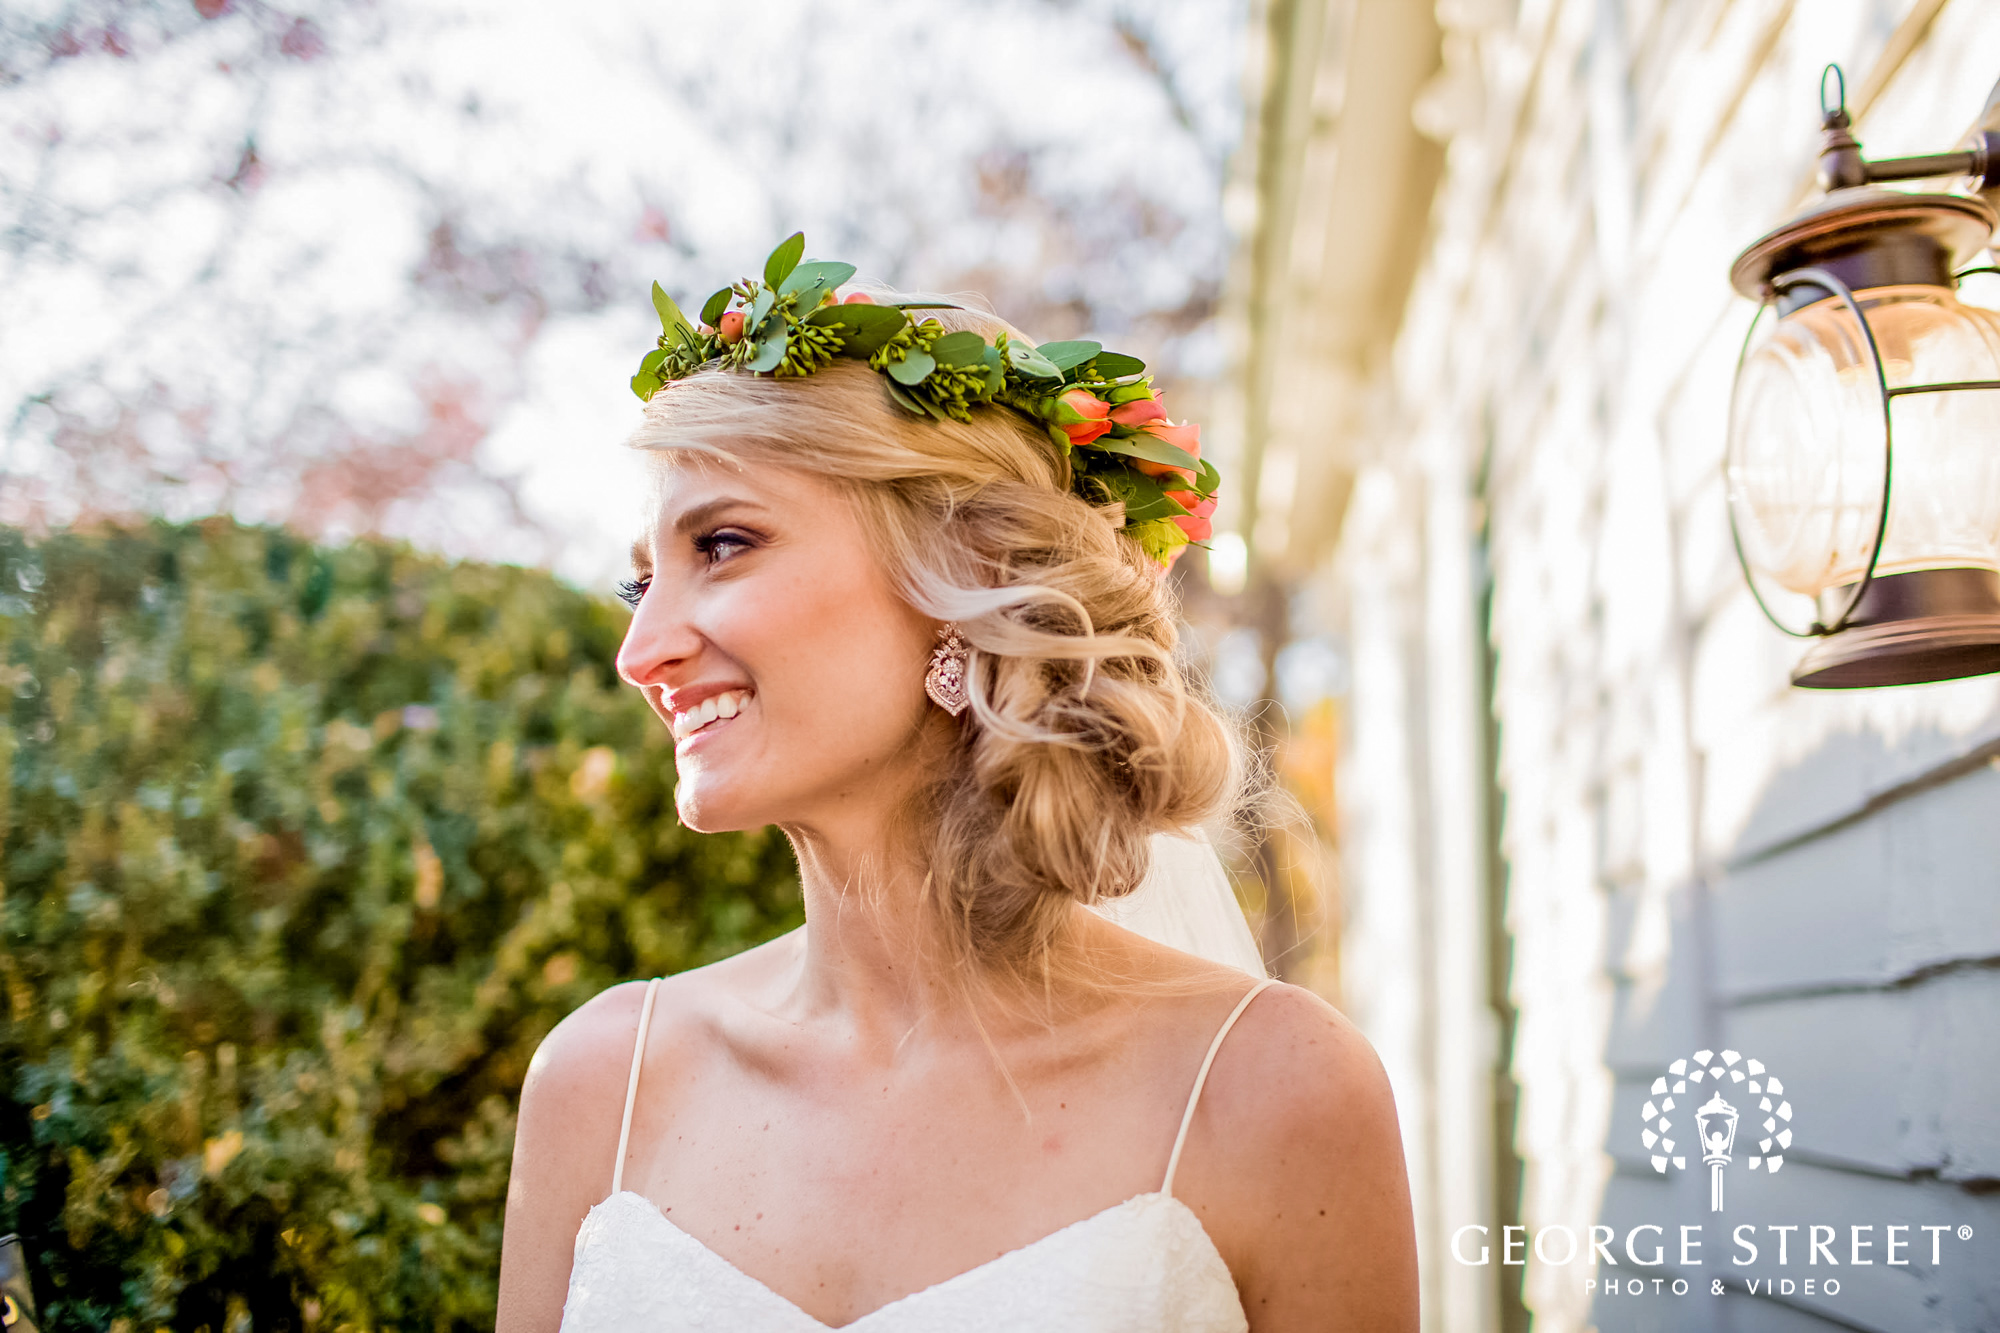 Flower Crown Inspiration For Your Own Royal Wedding George Street